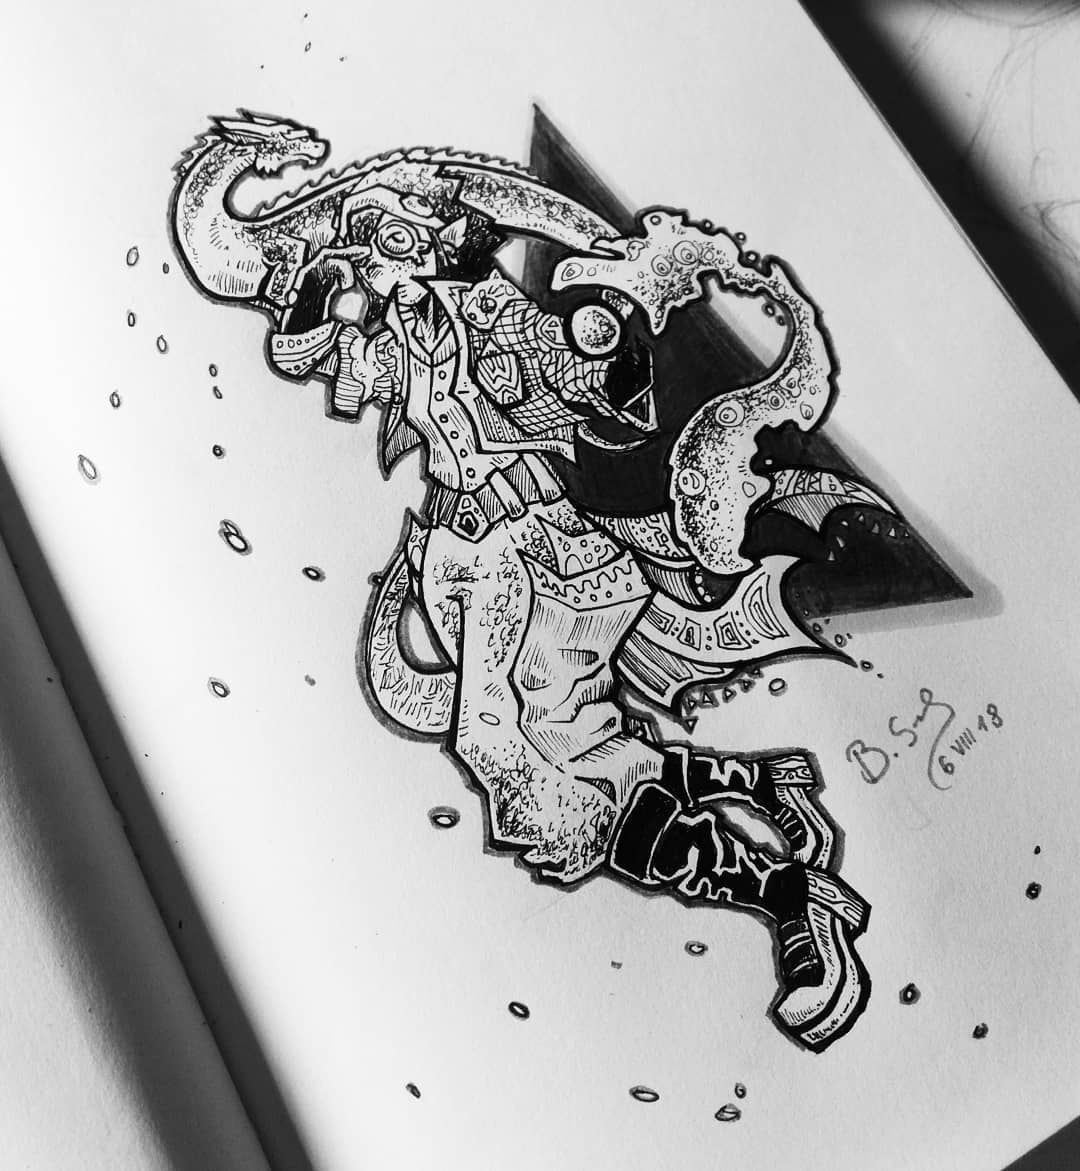 Pin By Pamela Ls On Drawing Ideas And Inspiration Steampunk Art Dragon Art Ink Art